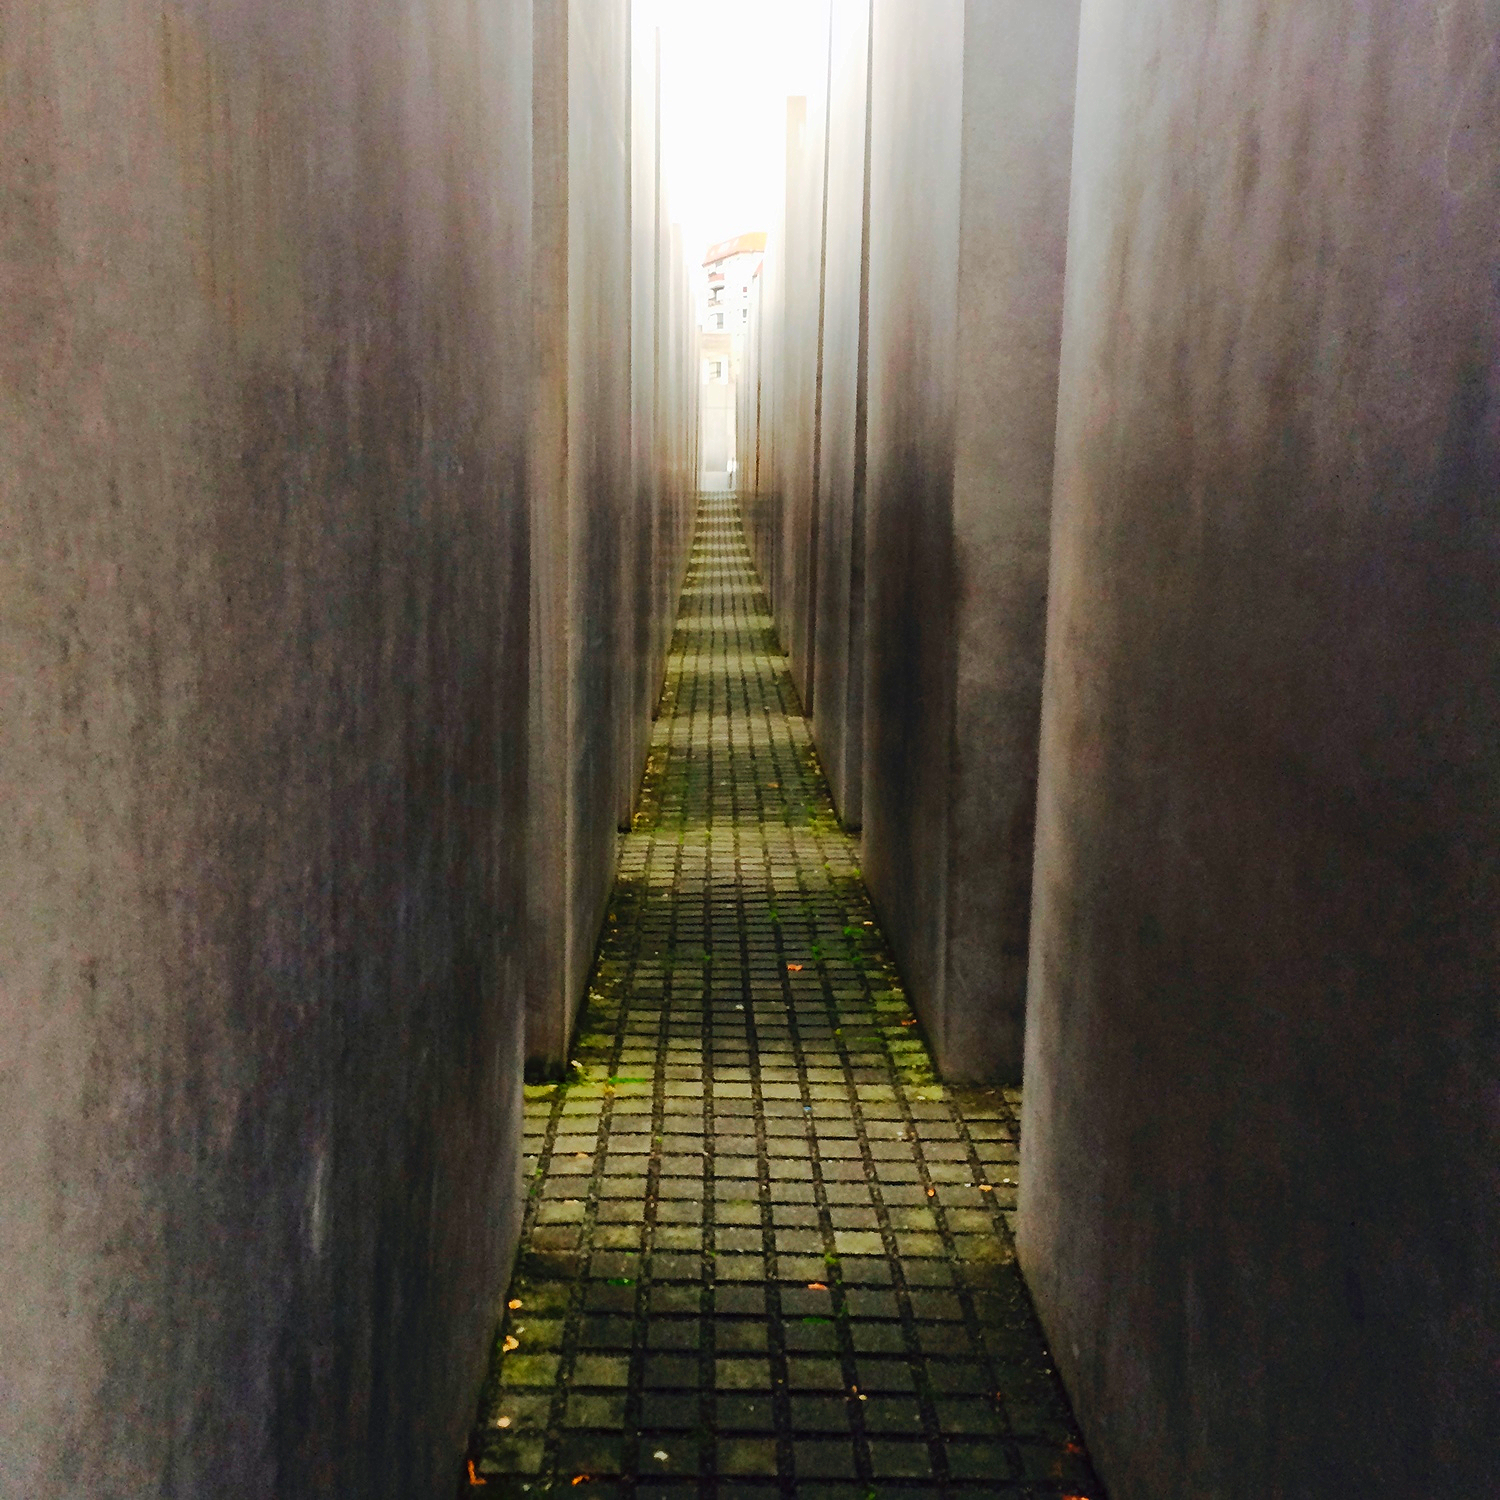 Jewish Memorial as the pillars surround me.